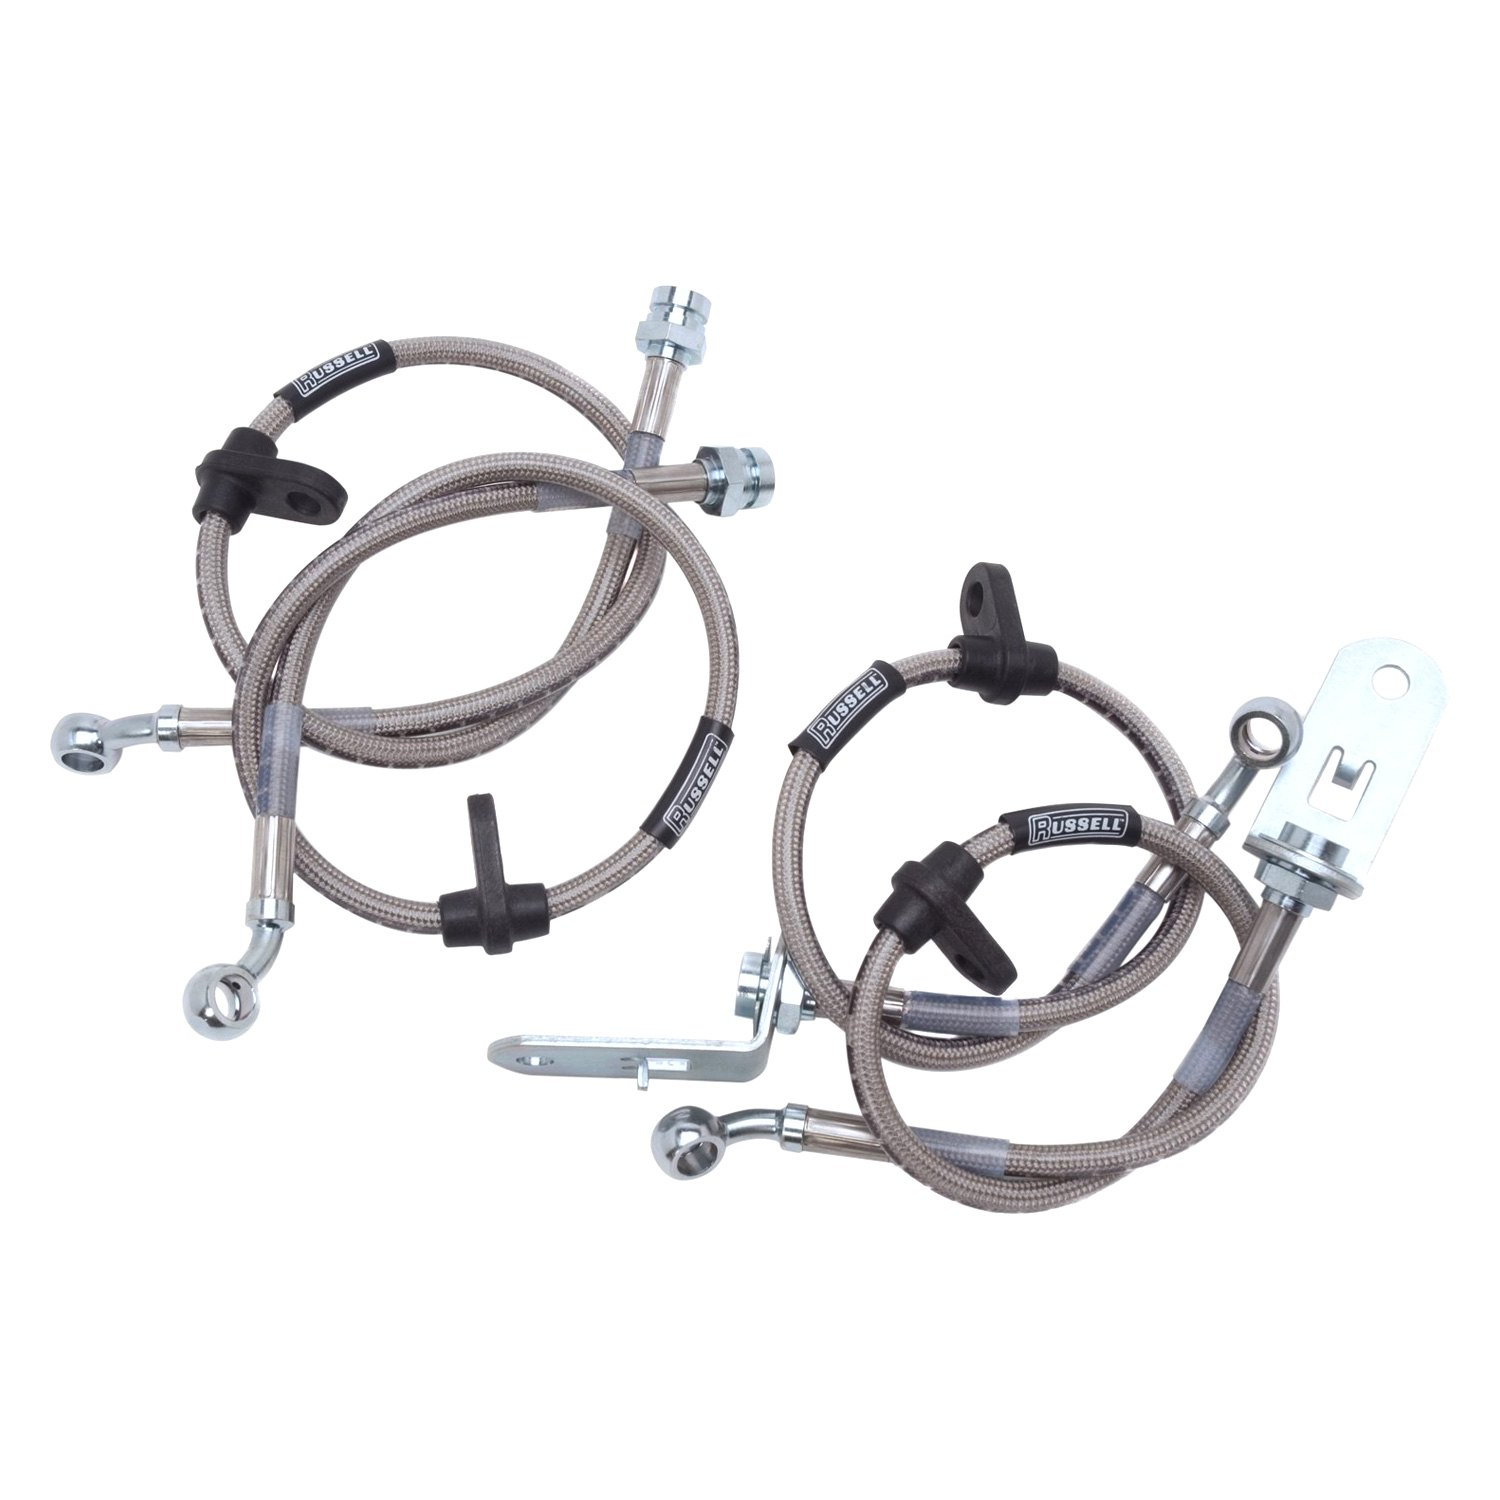 russell ford focus rear drum brakes 2001 brake hose kit. Black Bedroom Furniture Sets. Home Design Ideas